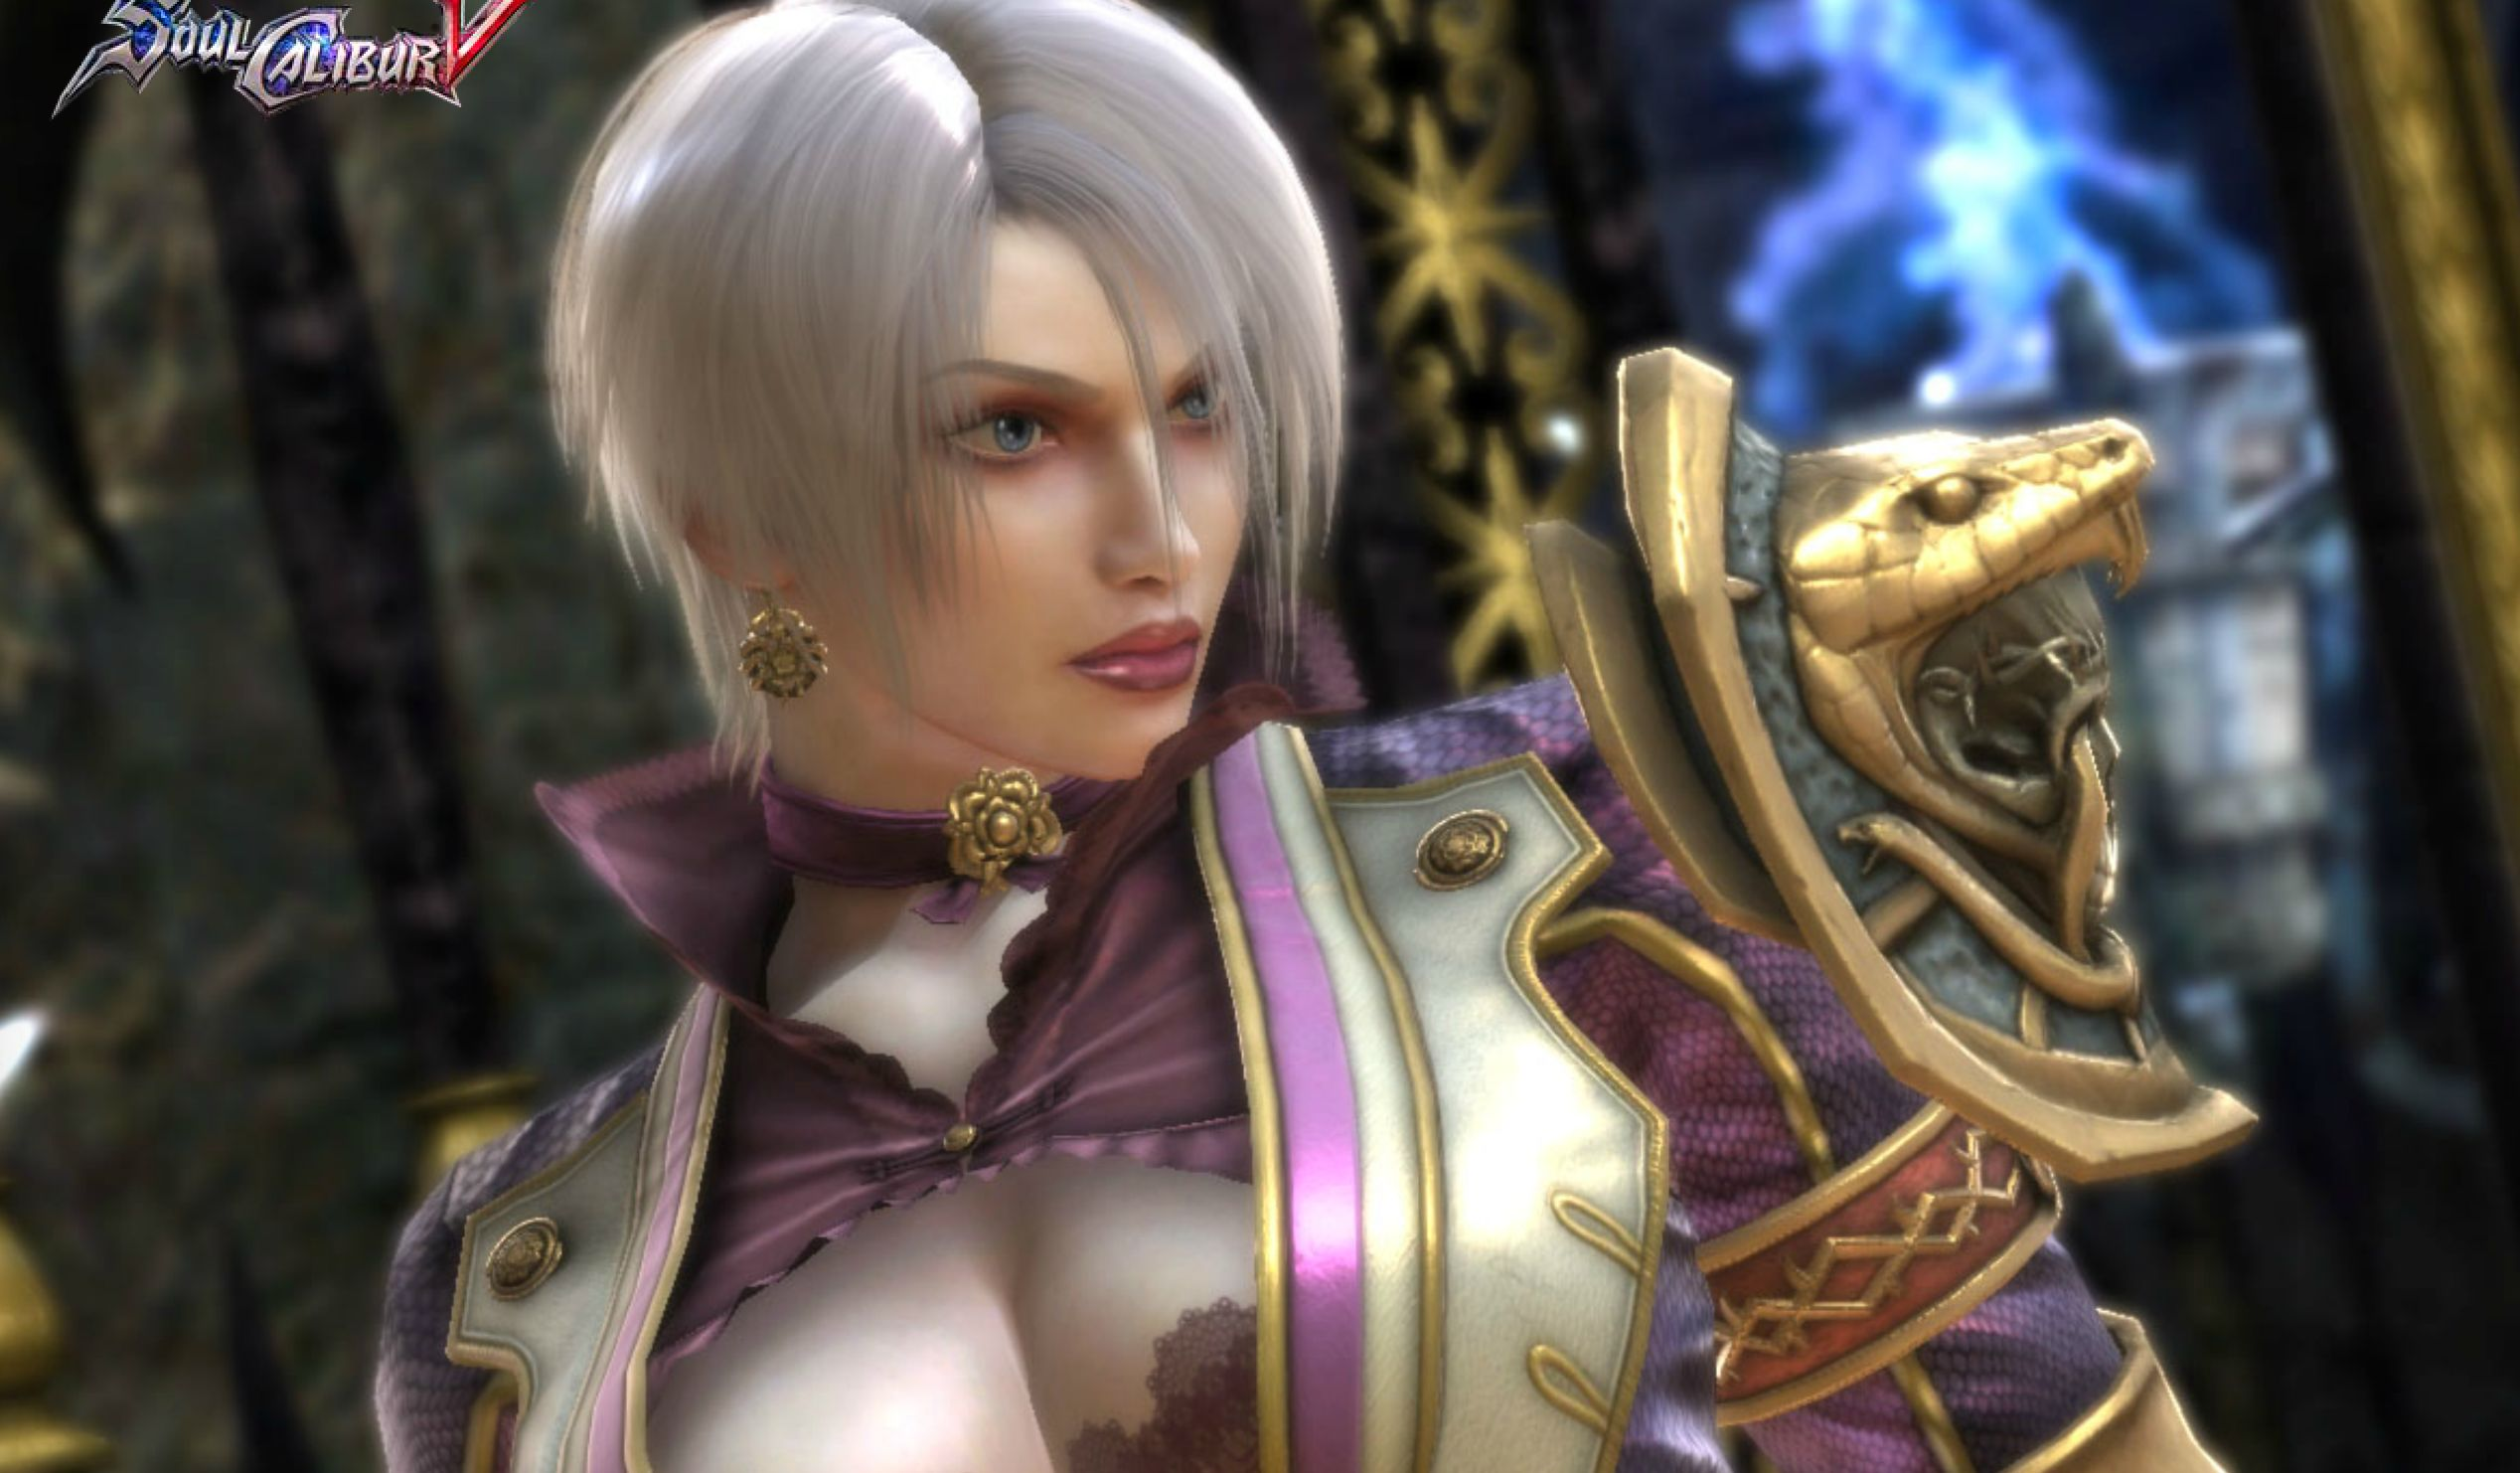 Top sexualized male characters